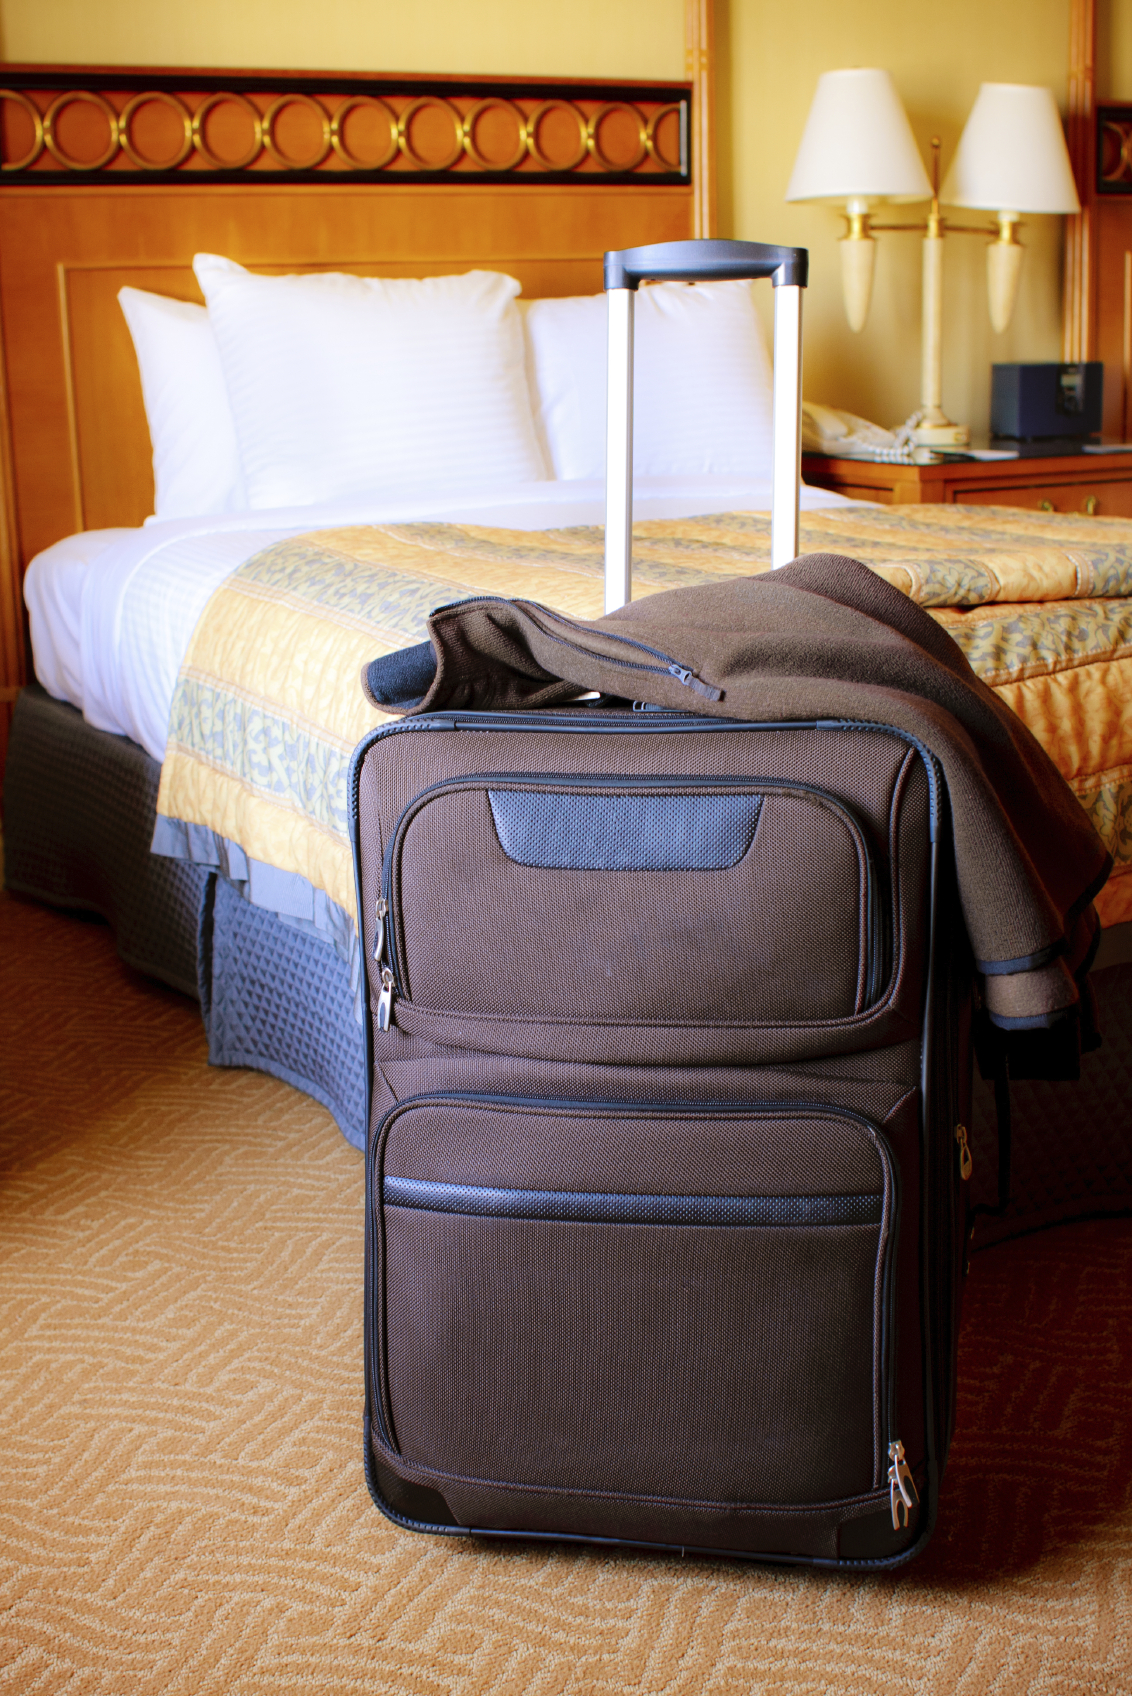 Bed Bug Infestation - A Concern for Hospitality Industry - Insights for Your Industry